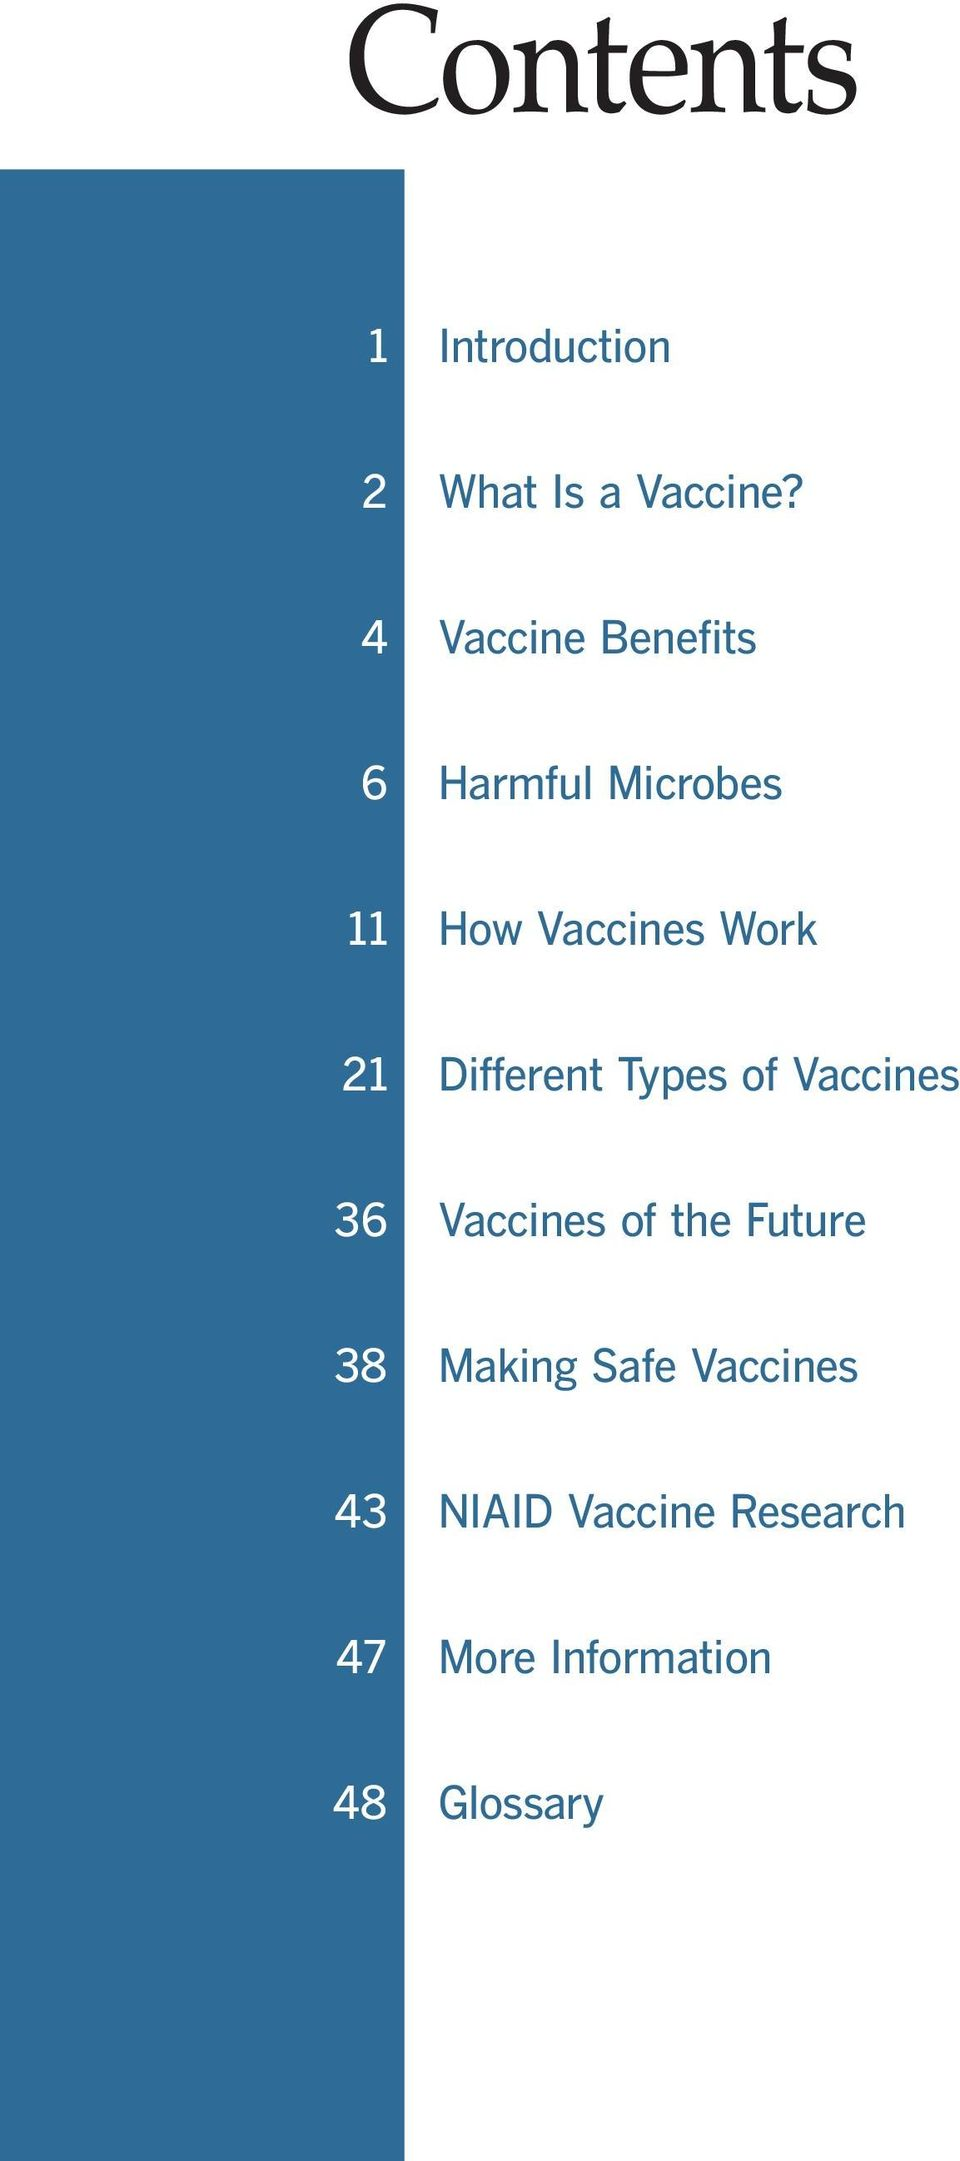 21 Different Types of Vaccines 36 Vaccines of the Future 38